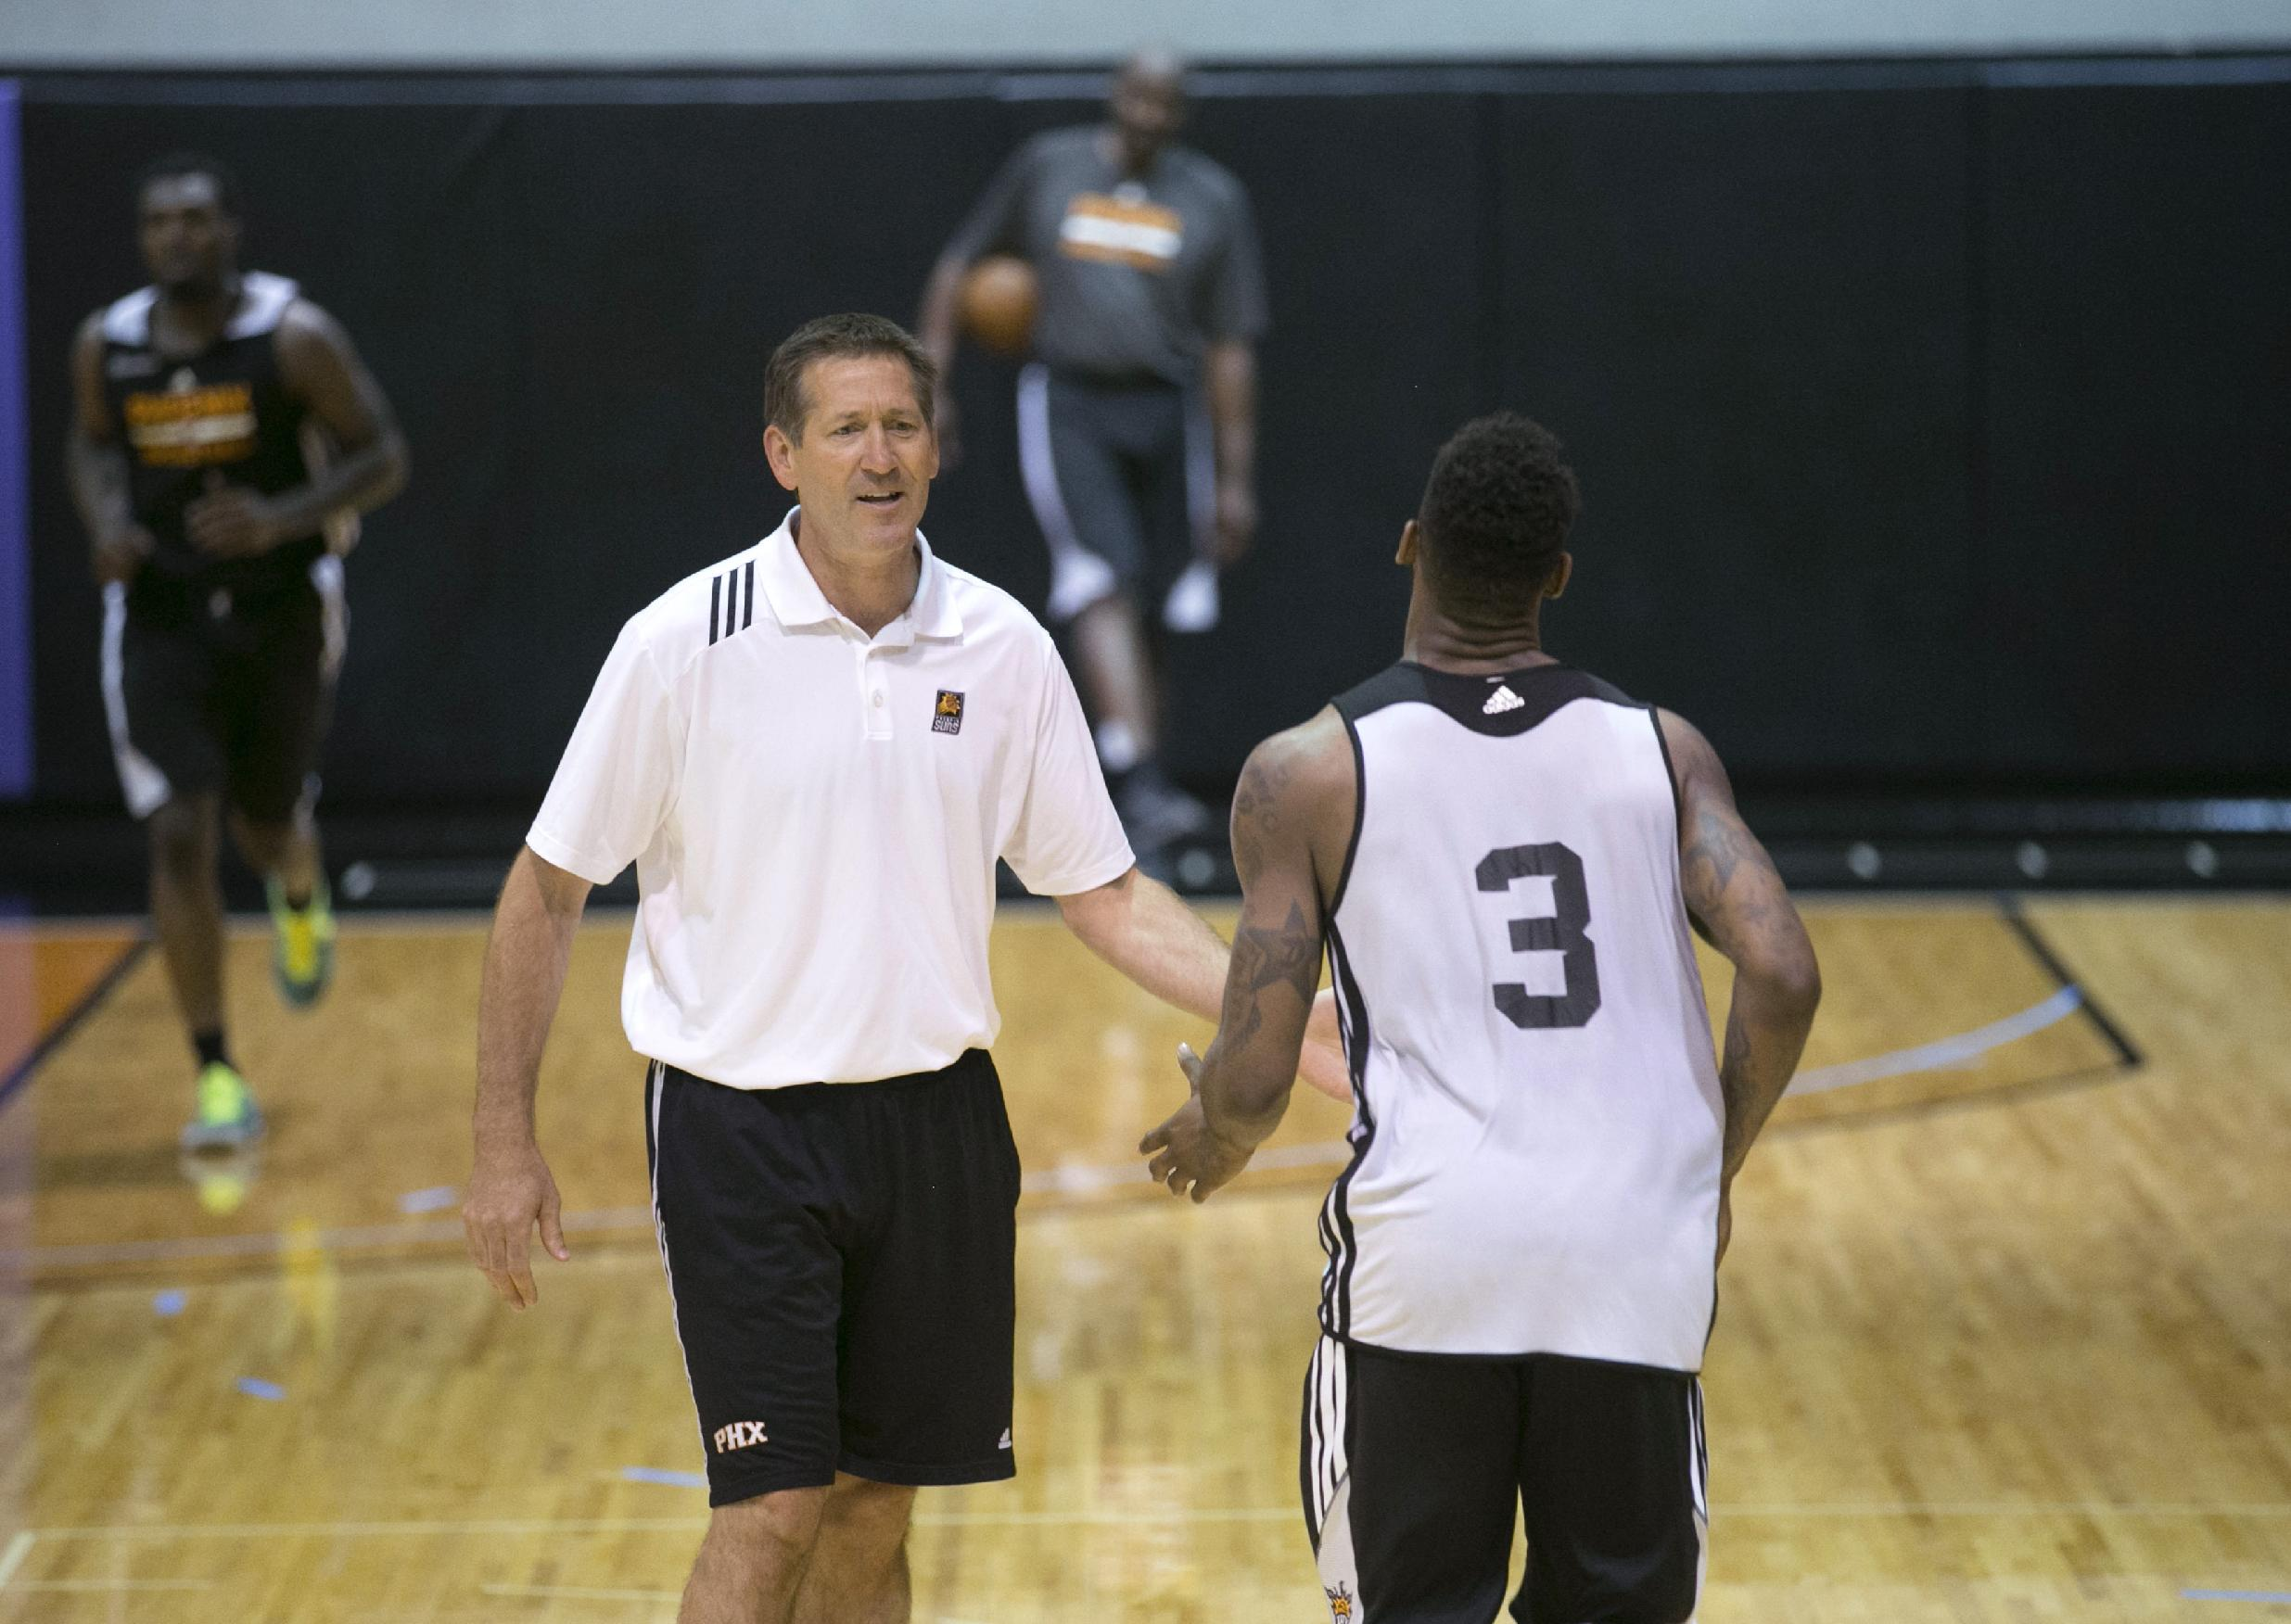 NBA basketball draft prospect DeAndre Kane from Iowa State slaps five with Phoenix Suns coach Jeff Hornacek while running during a workout for prospective draftees in Phoenix on Thursday, May 29, 2014. ( AP Photo/The Arizona Republic, David Wallace)